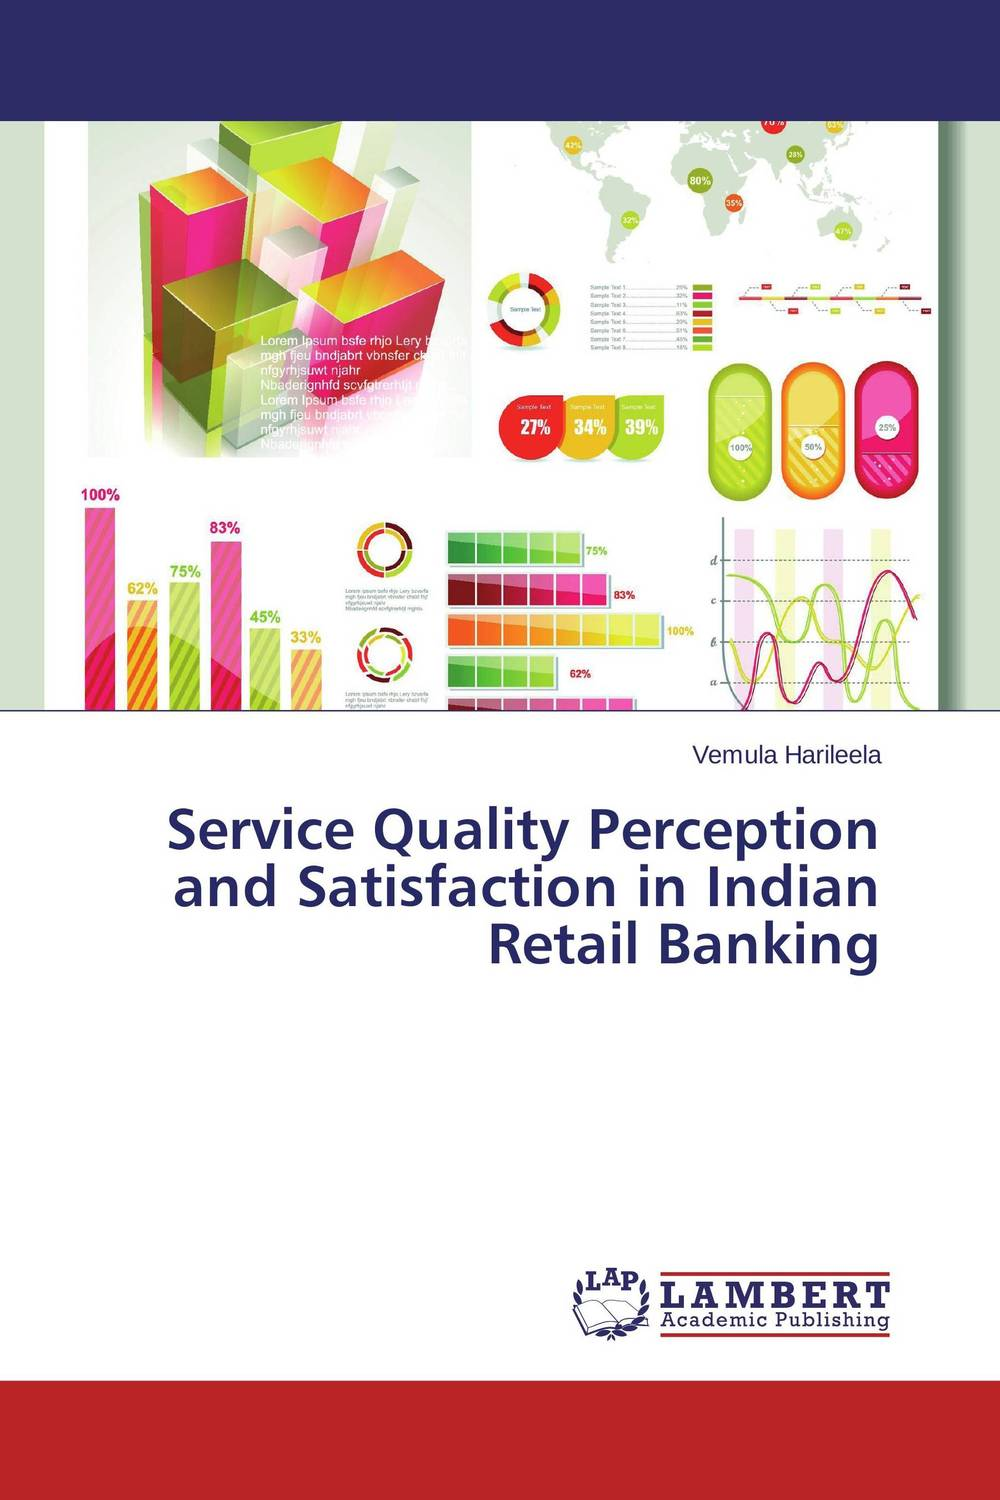 Service Quality Perception and Satisfaction in Indian Retail Banking quality perception